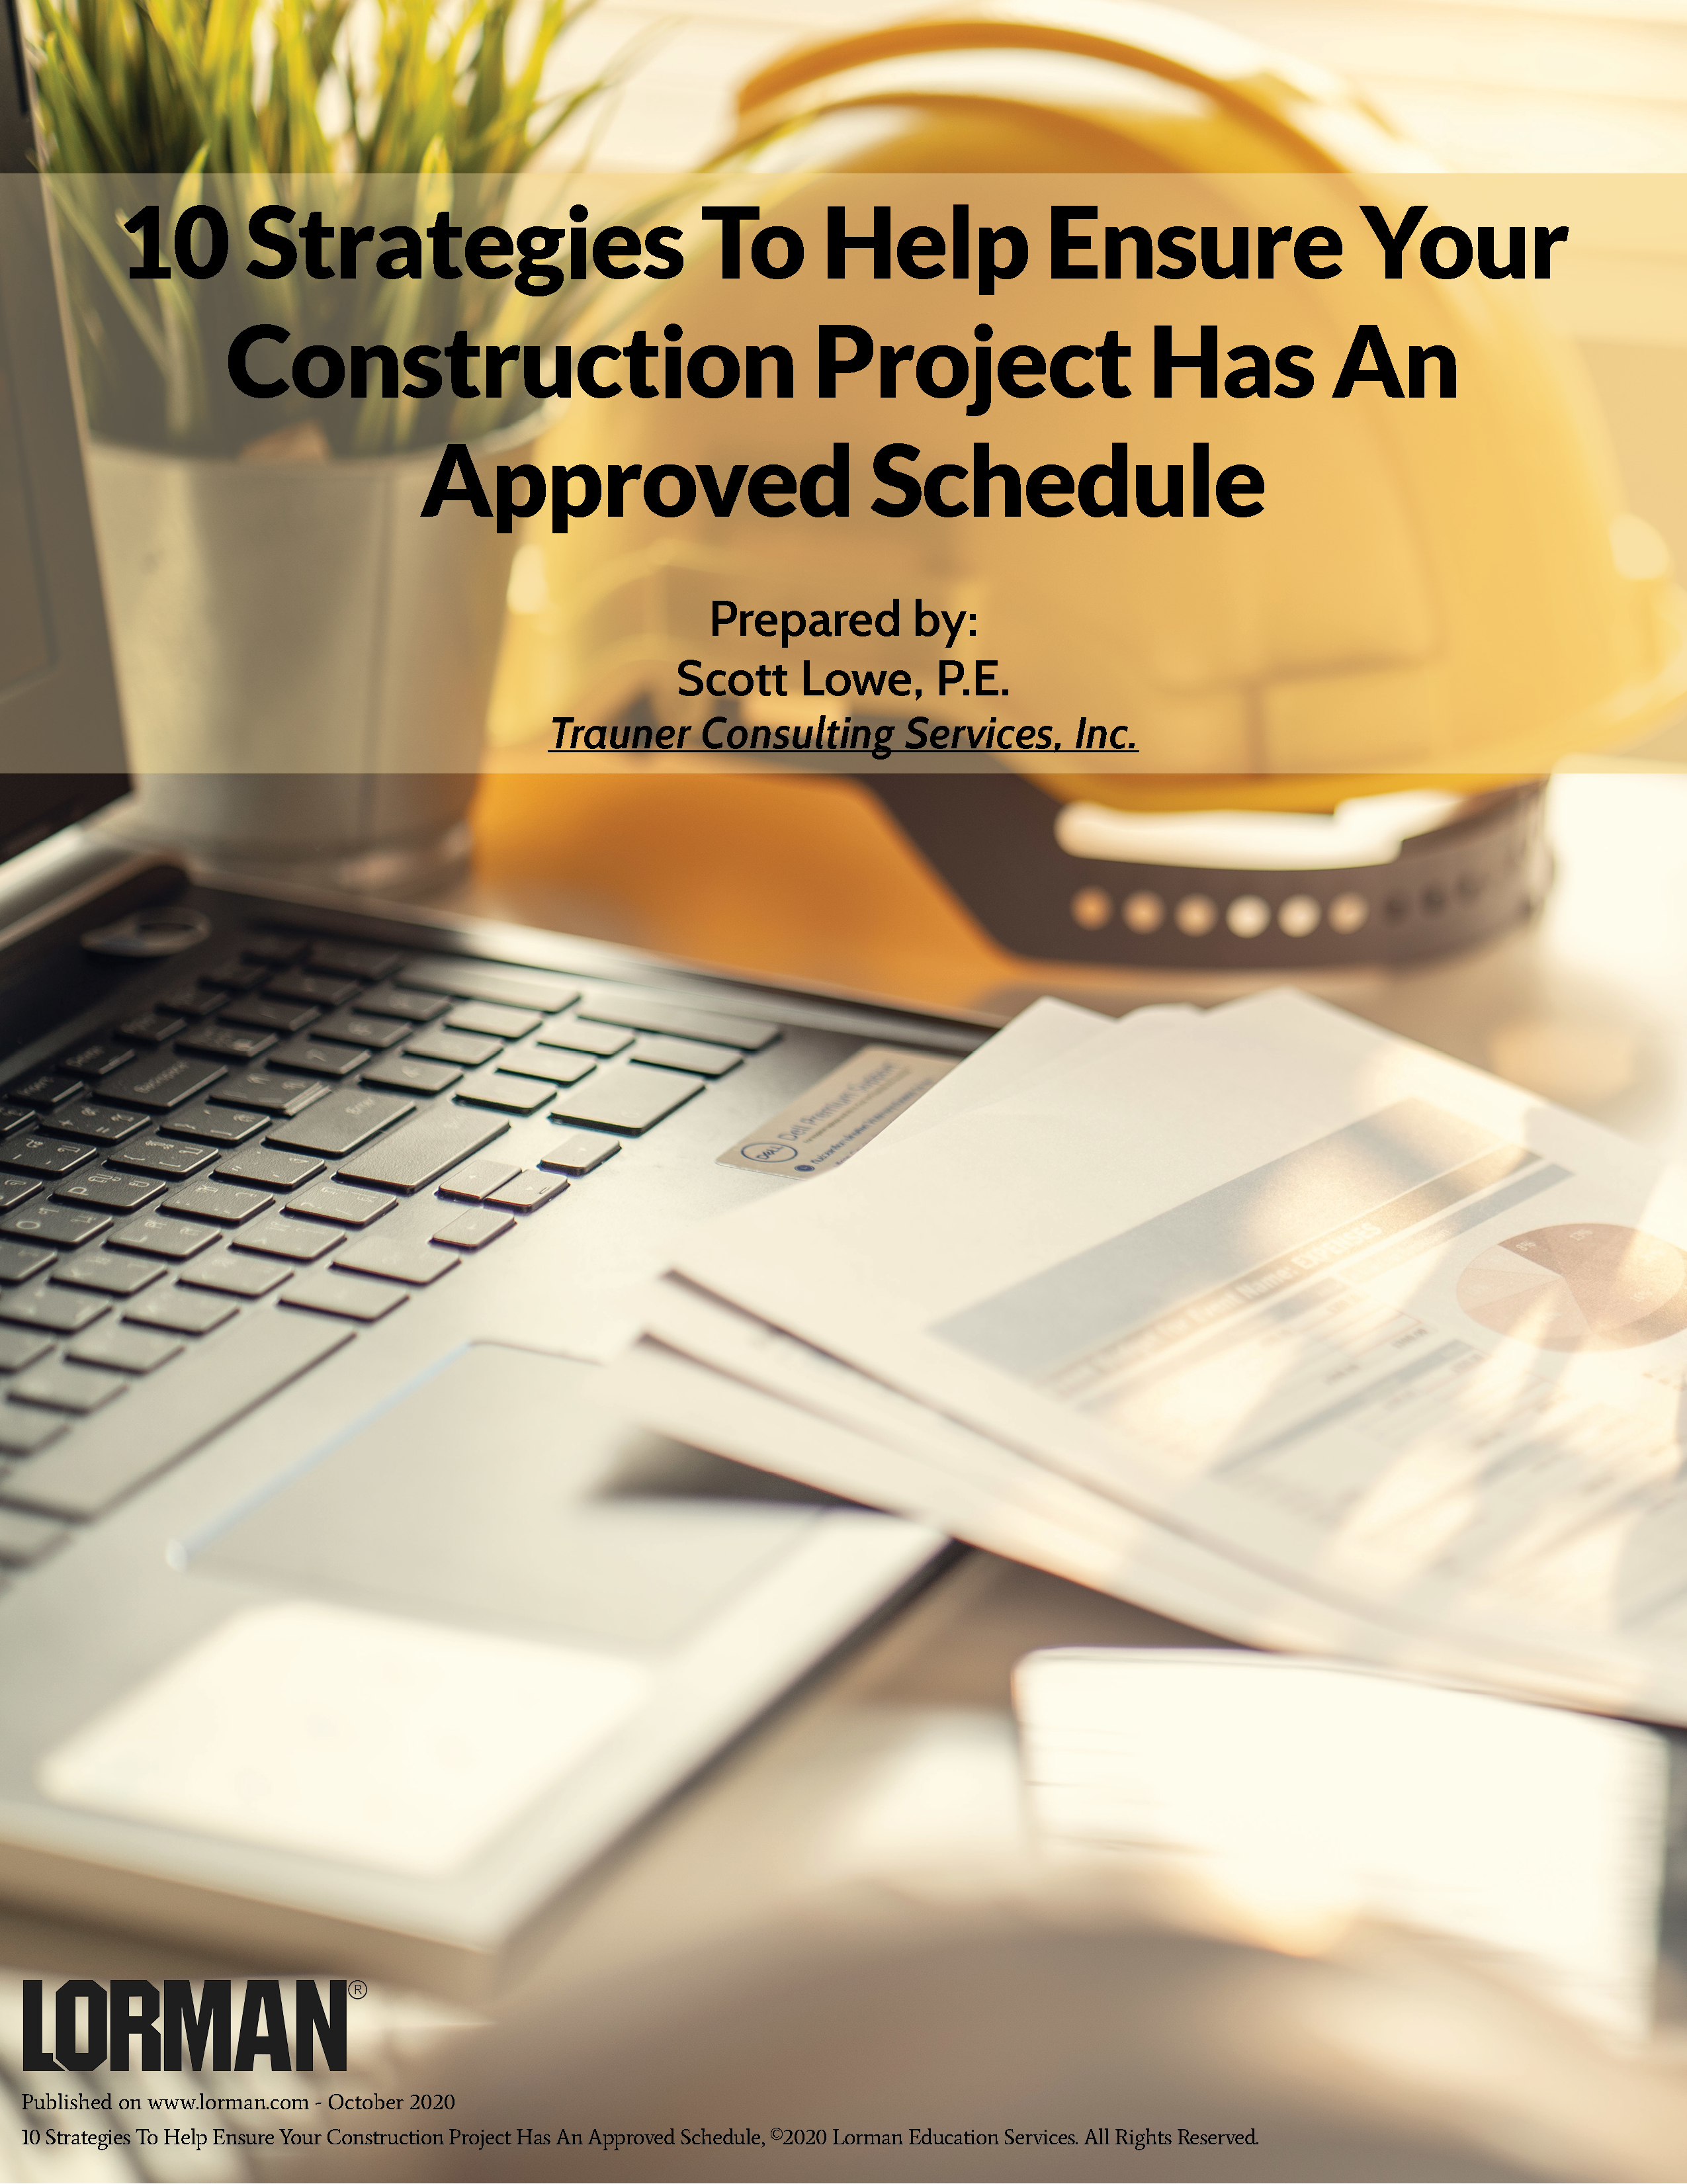 10 Strategies To Help Ensure Your Construction Project Has An Approved Schedule